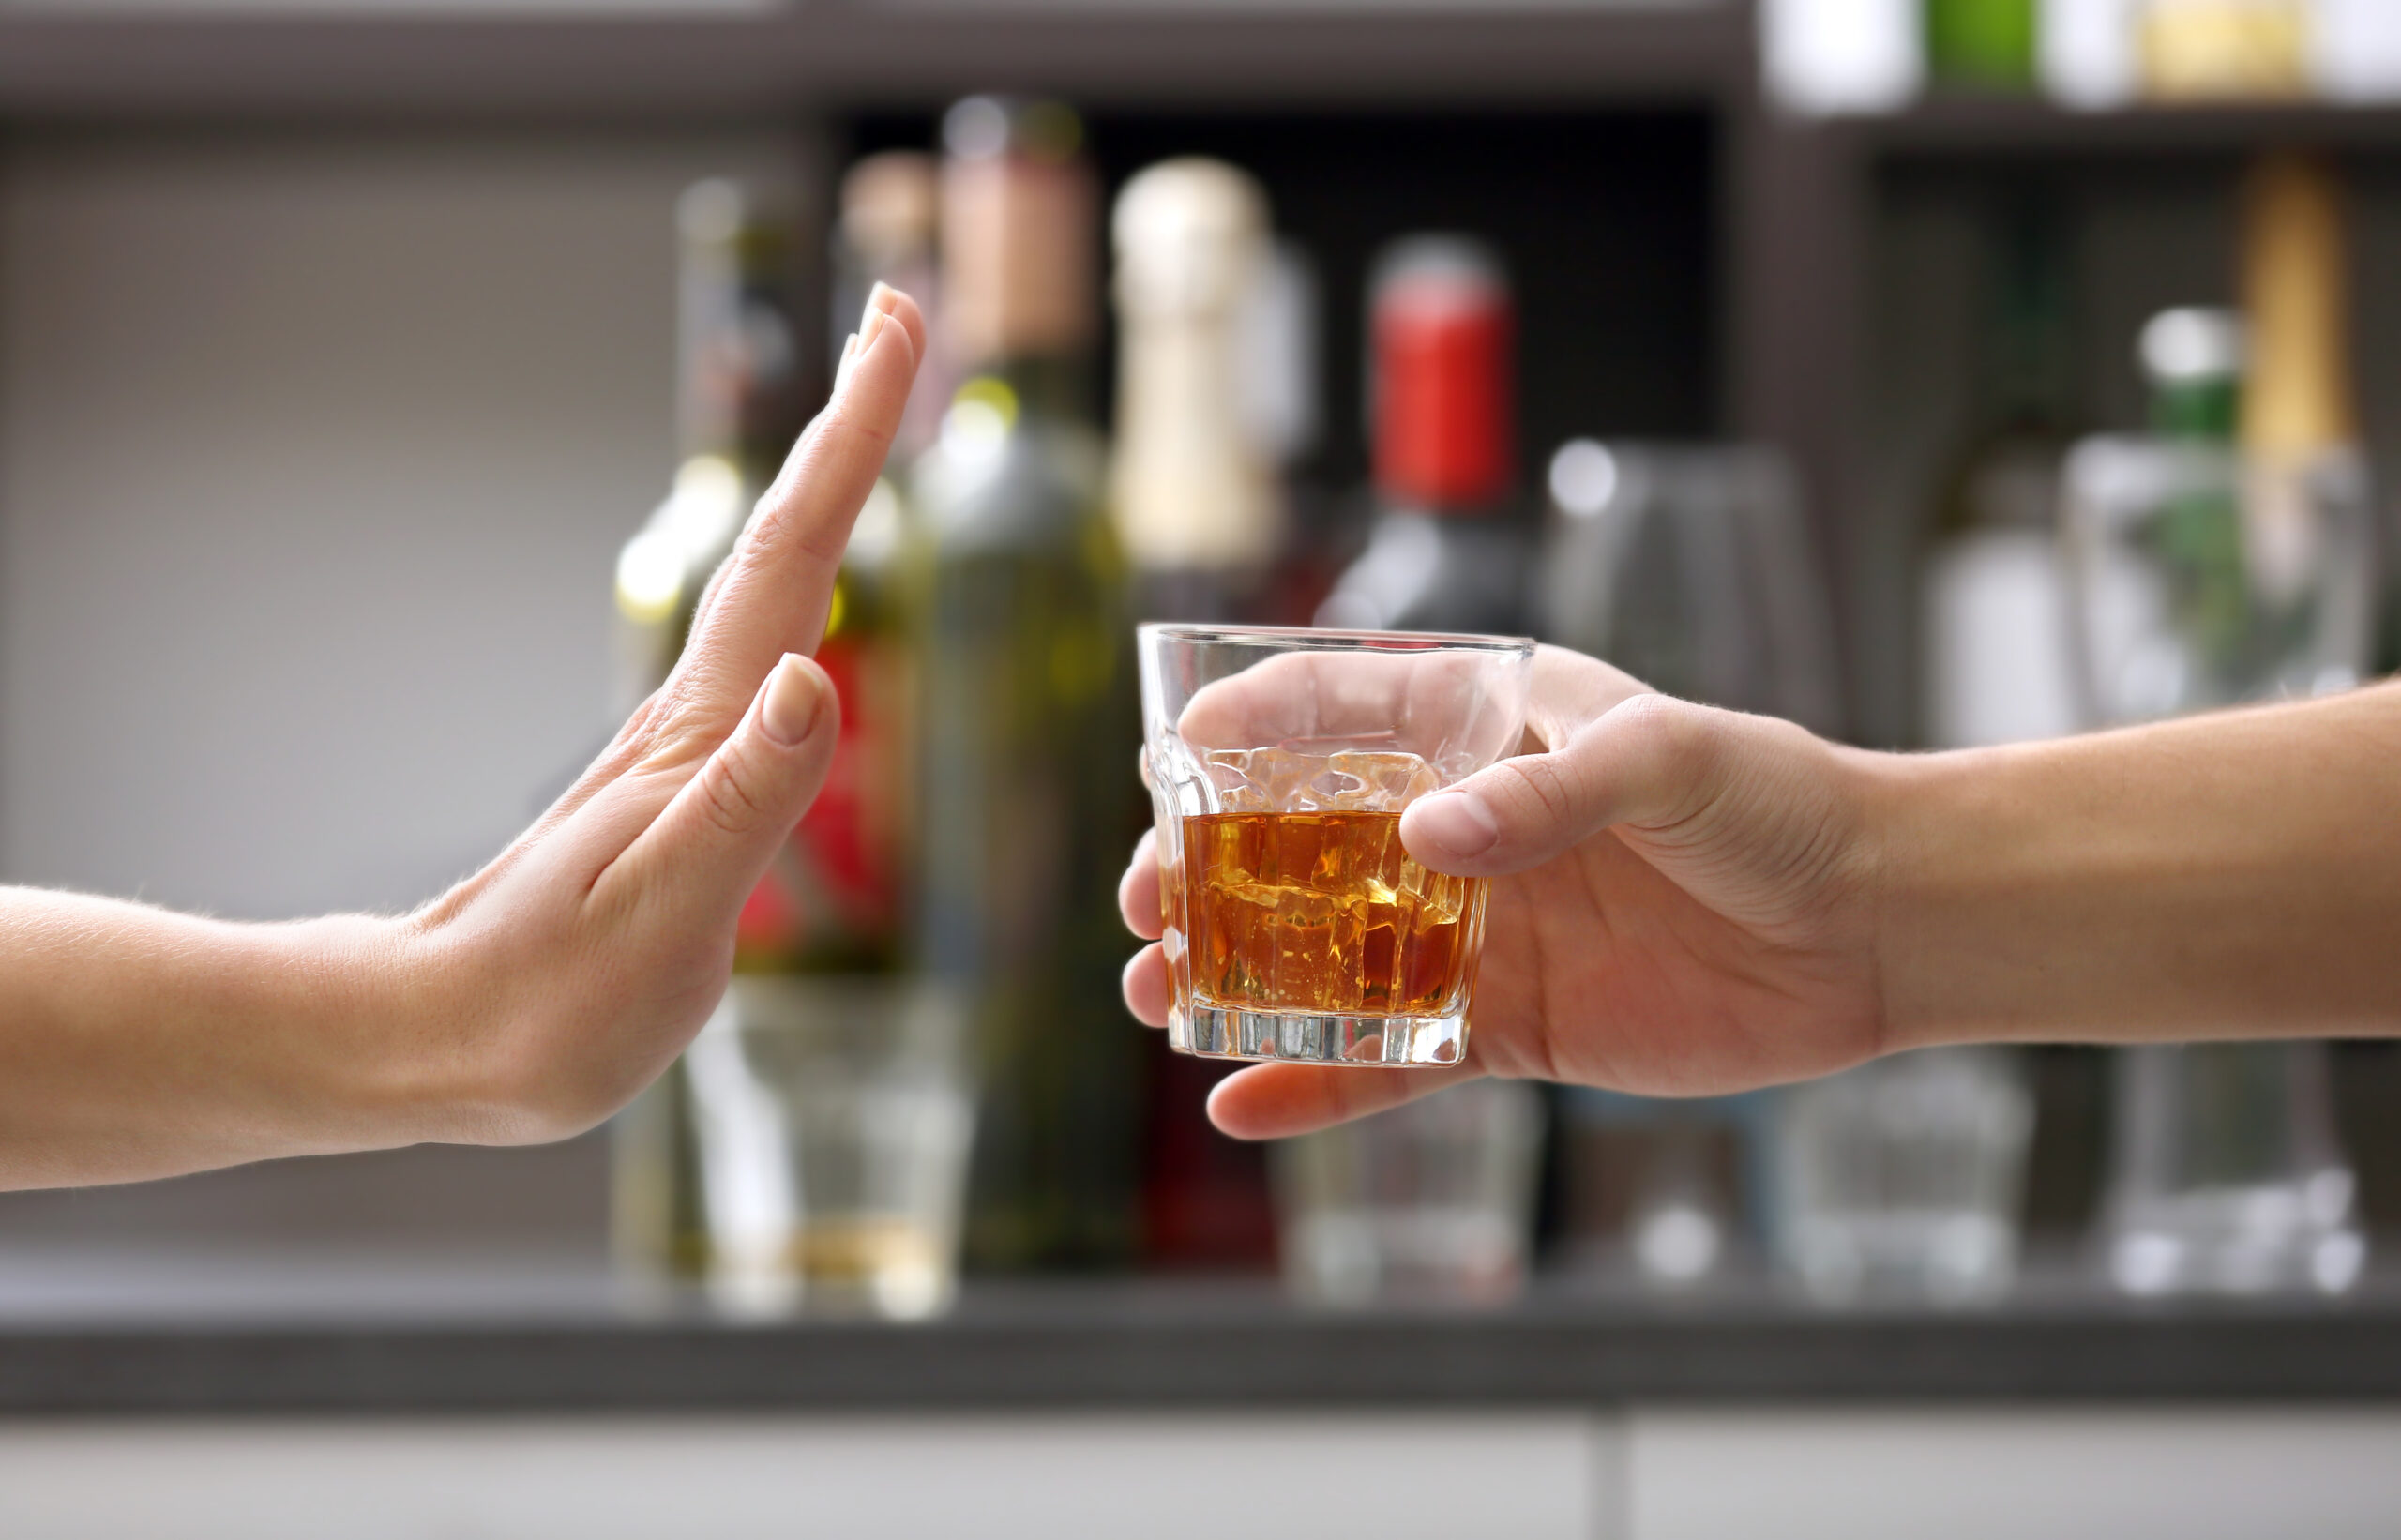 Intervention for Alcohol Abuse: Get Help for a Loved One